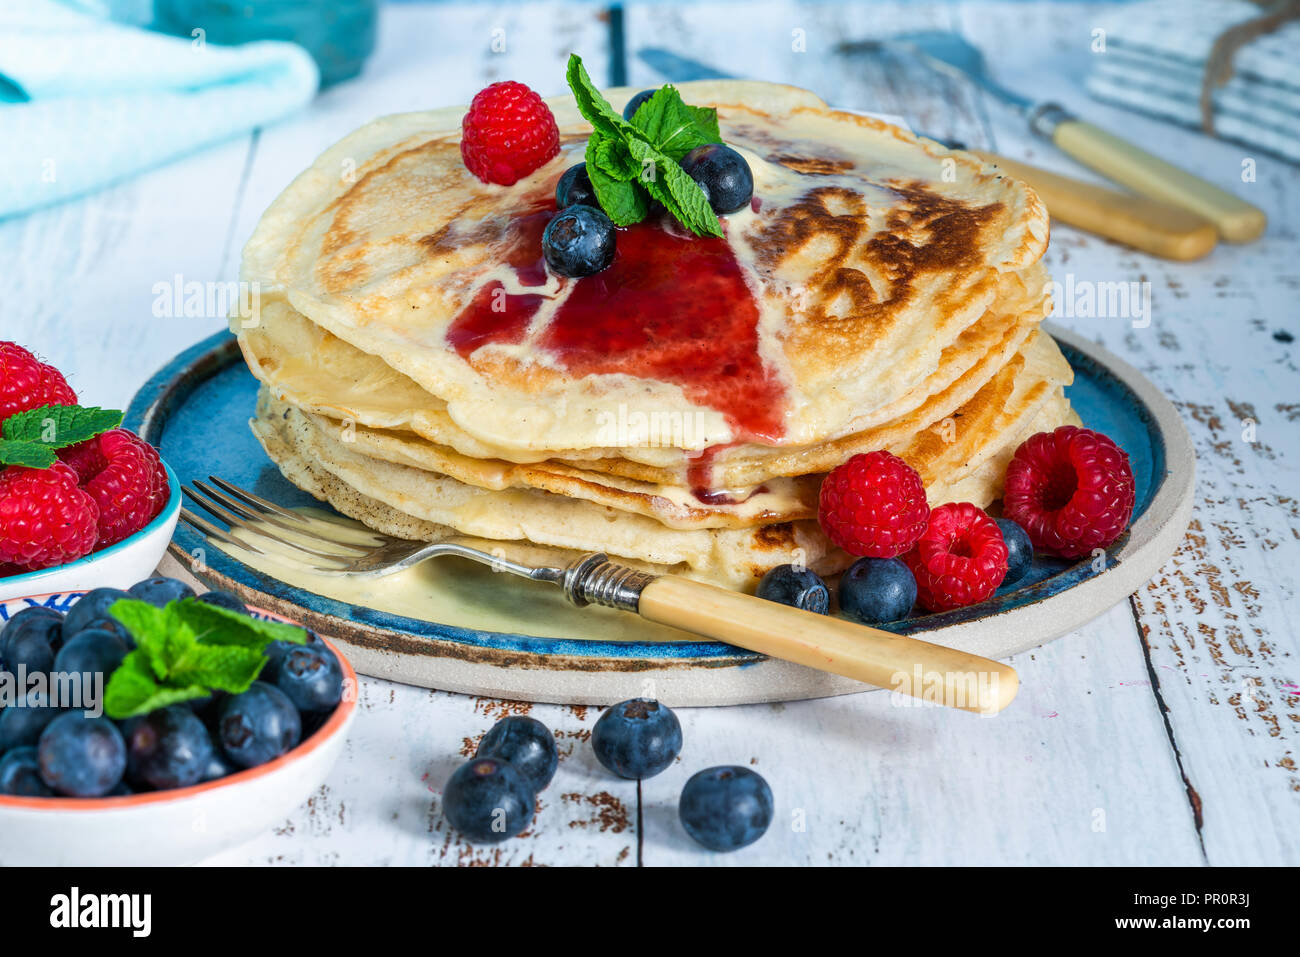 A stack of pancakes with fresh fruit, jam and cream on a plate - Stock Image